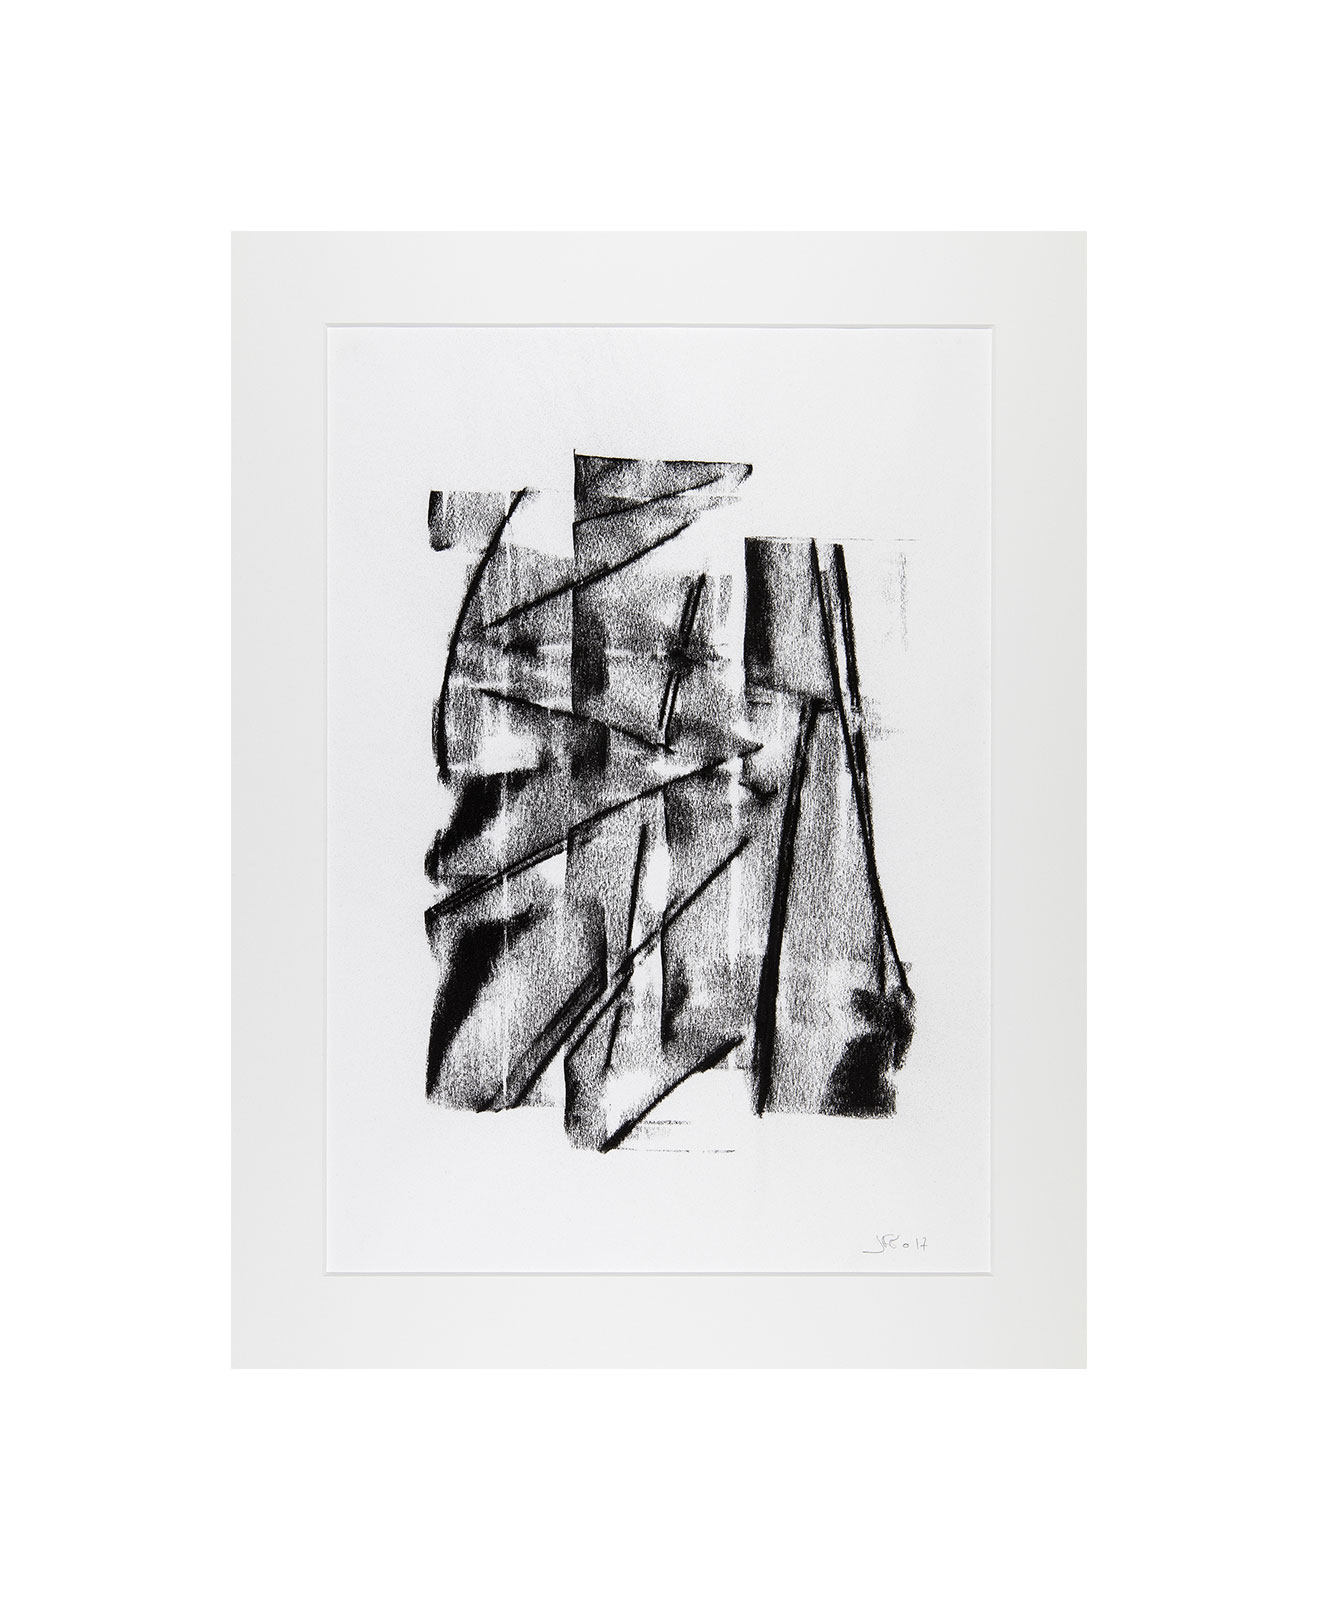 Cha 1.31, Charcoal on paper, black and white artwork, drawing, jf escande, contemporary art